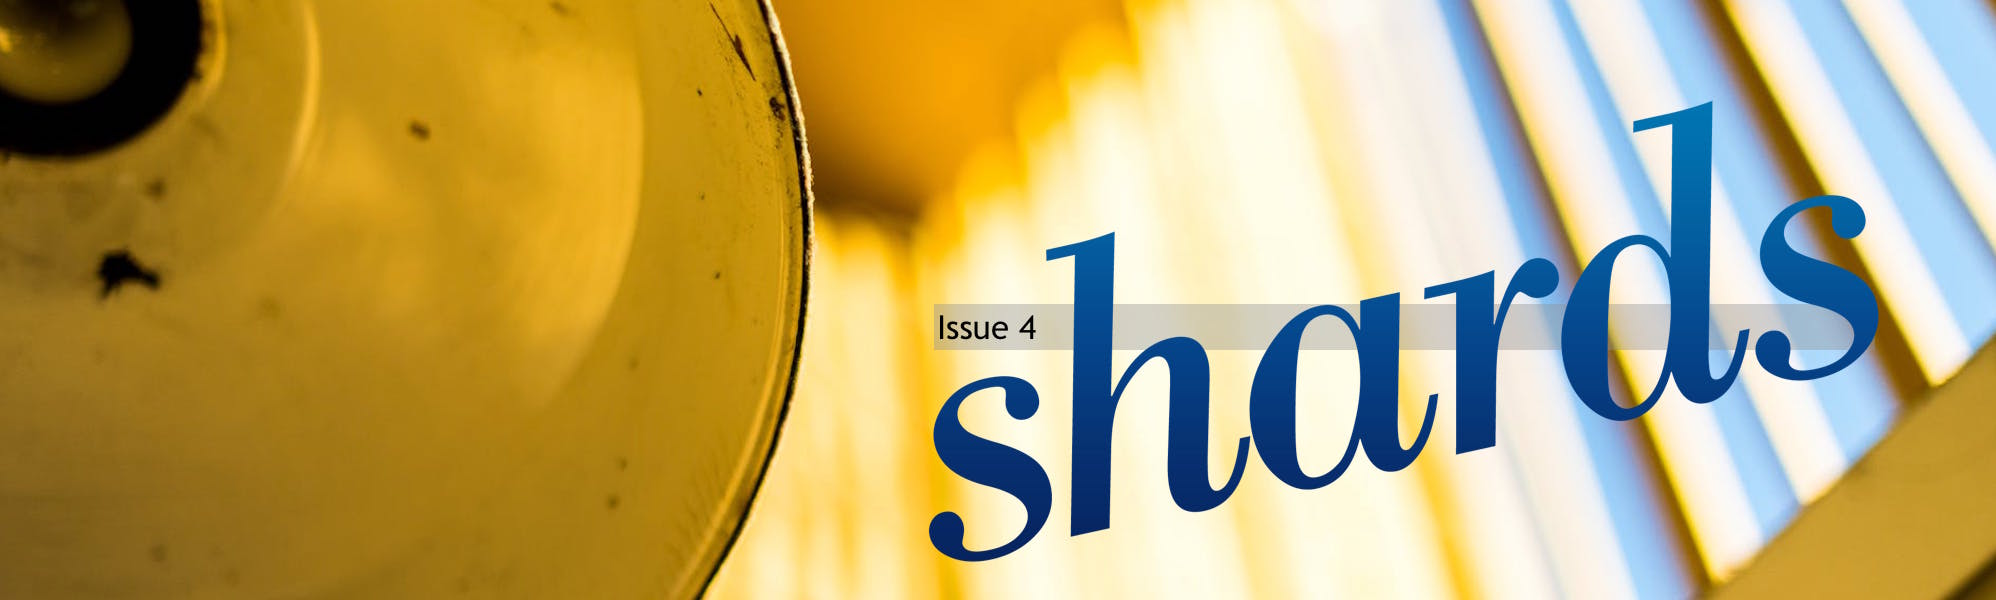 Shards | Issue 4 0 | Glass Mountain